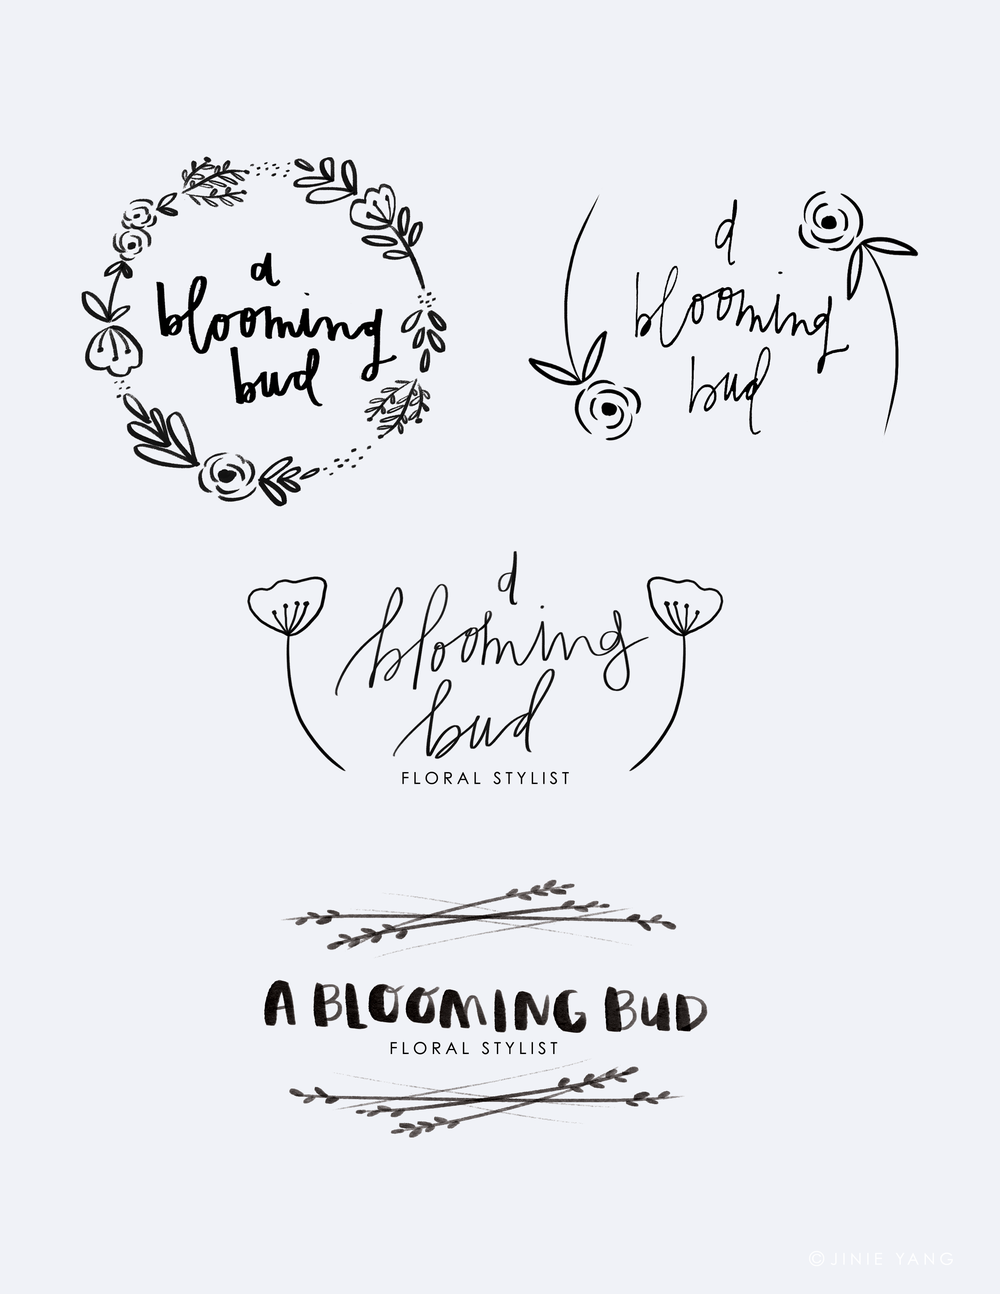 Allie from   A Blooming Bud   requested a logo a while ago and this is what my process looked like. I had a blast working with her! Super sweet girl and so enthusiastic about her work. And her florals are stunning. Be sure to check her out!